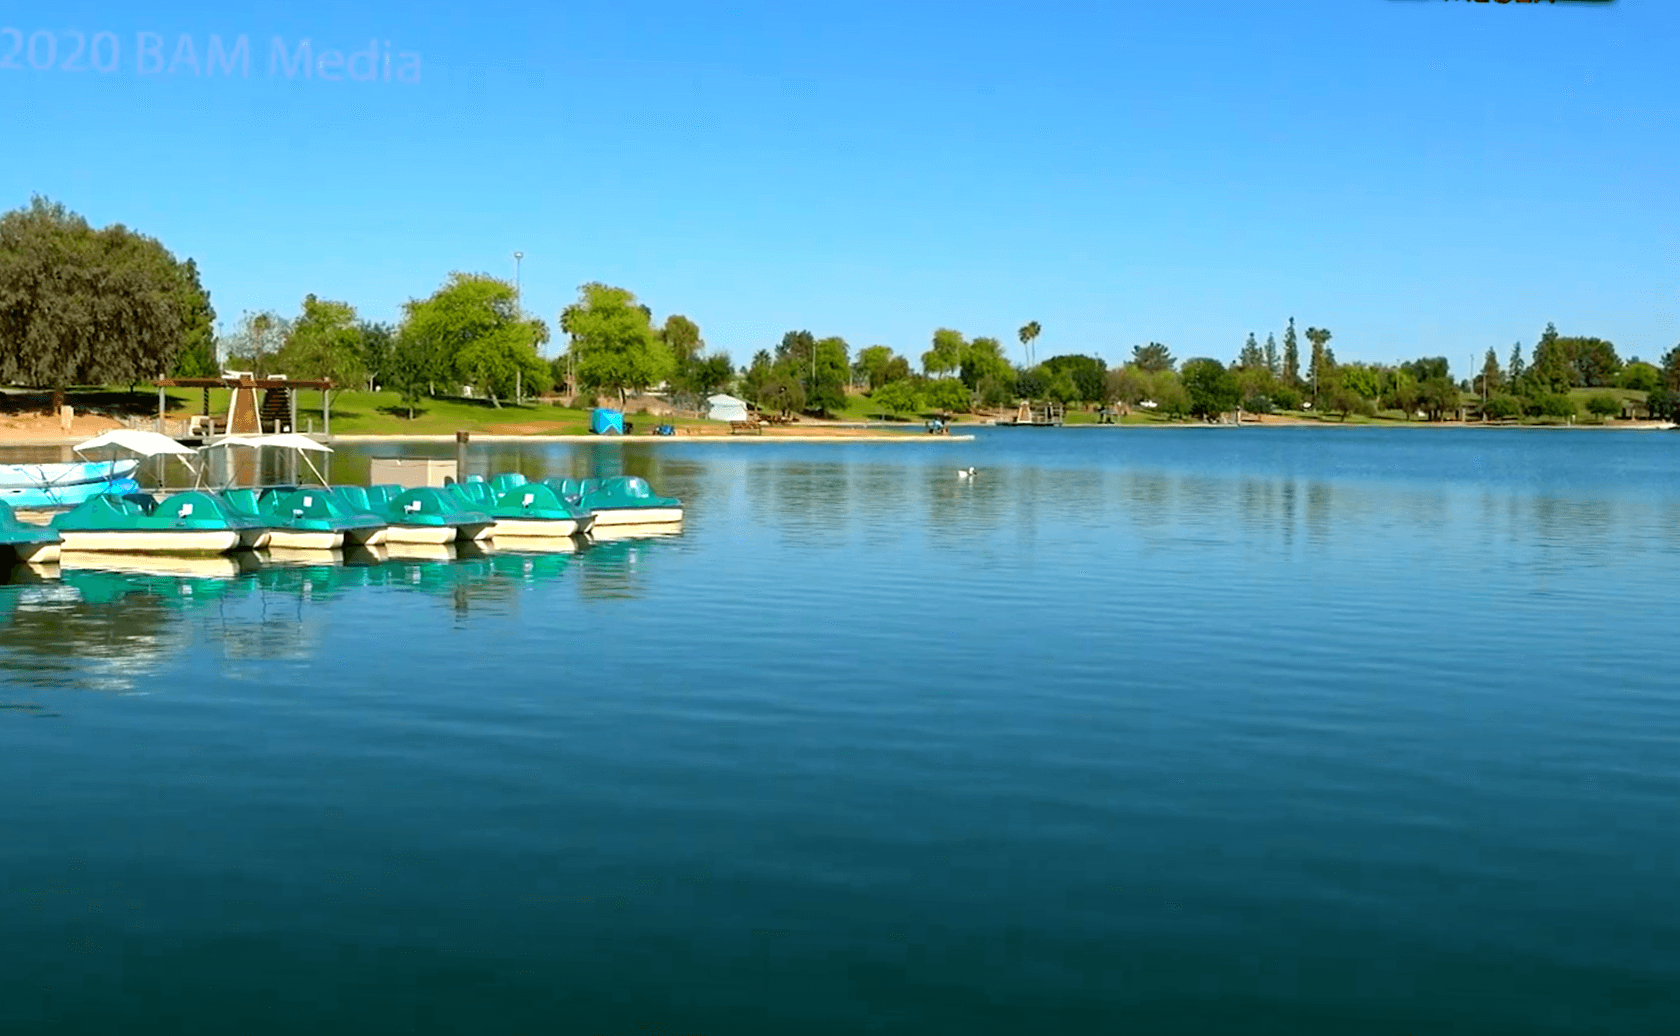 Kiwanis-Lake-Fishing-Guide-Tempe-AZ-06